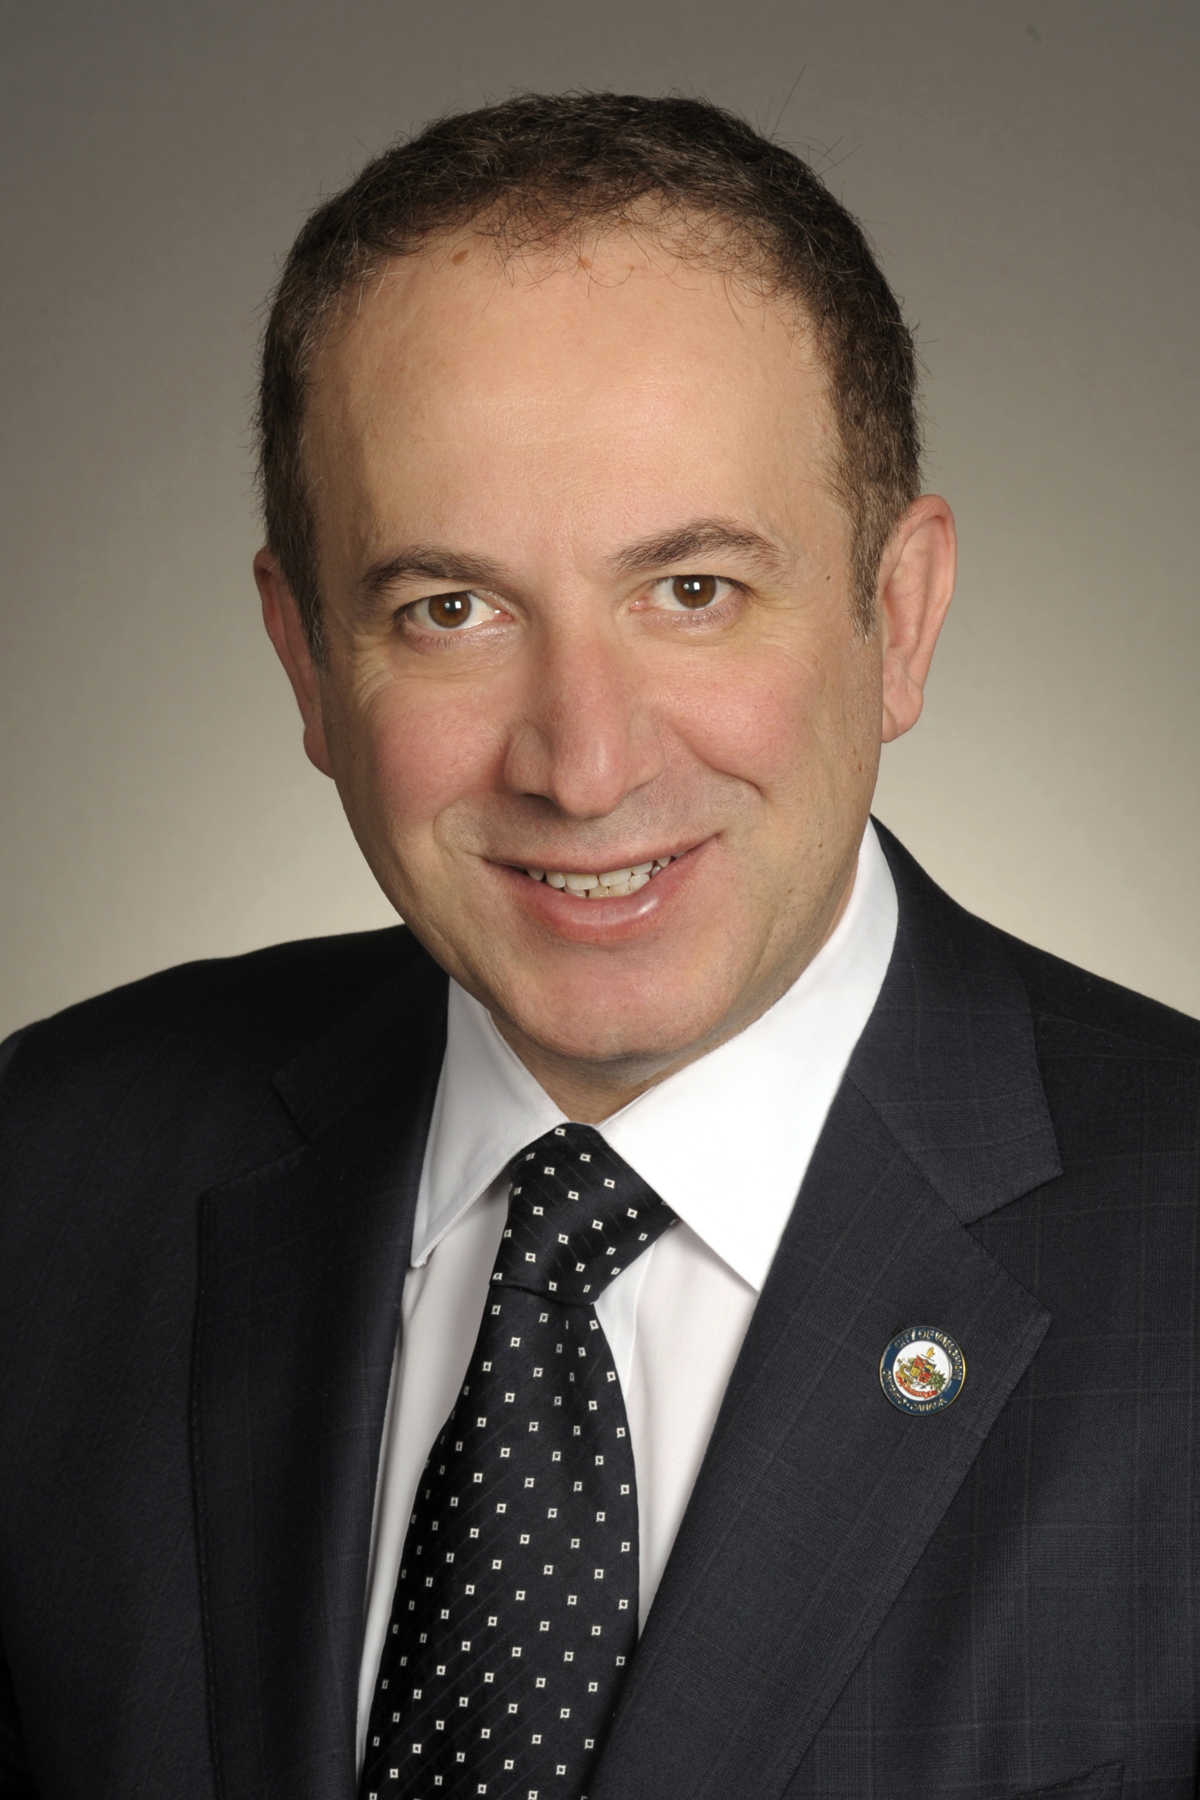 Maurizio Bevilacqua, Mayor of Vaughn and advisory council member for the Post-Grad Certificate in Business Administration at York University's School of Continuing Studies.